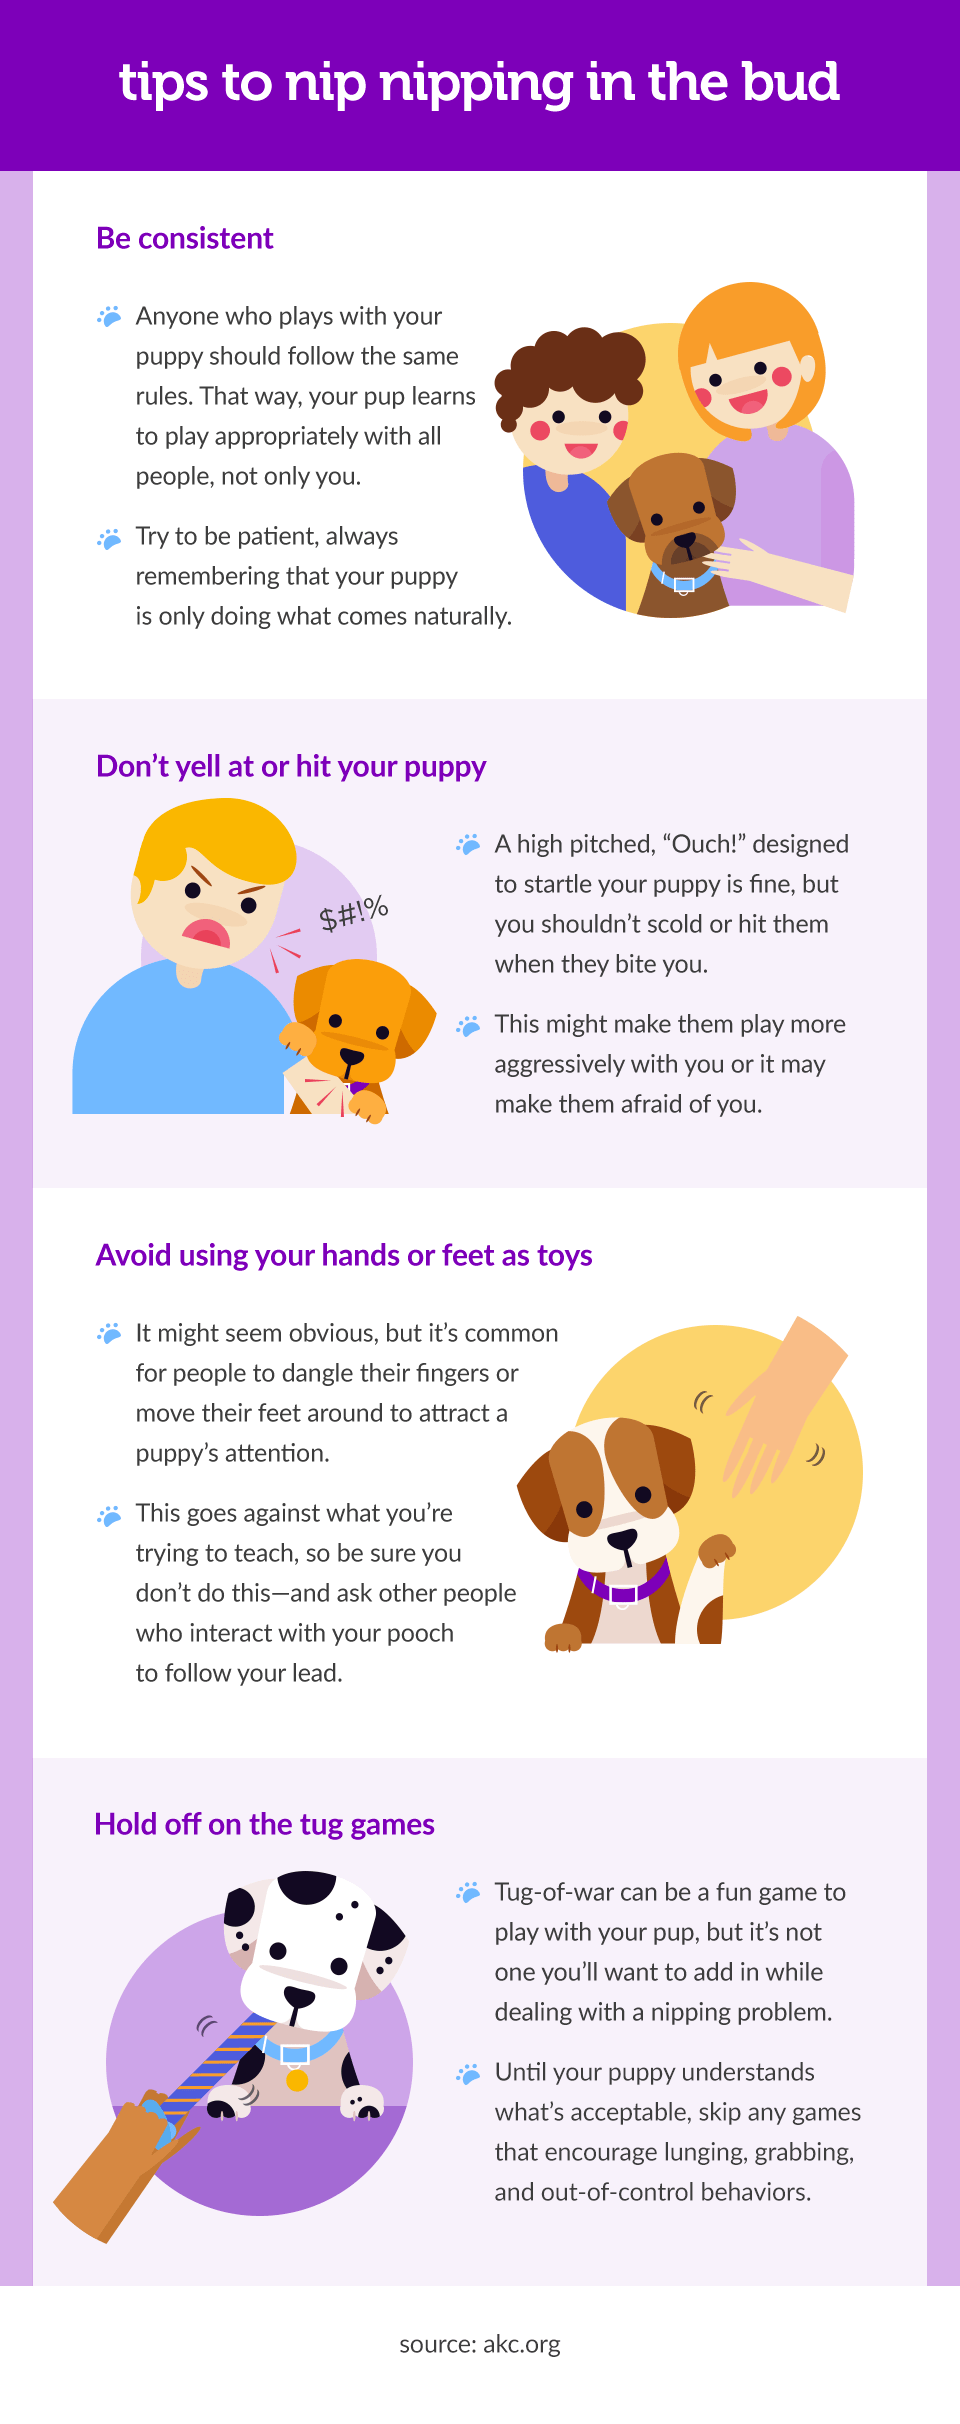 safe-and-humane-ways-to-teach-your-puppy-how-to-stop-biting-002